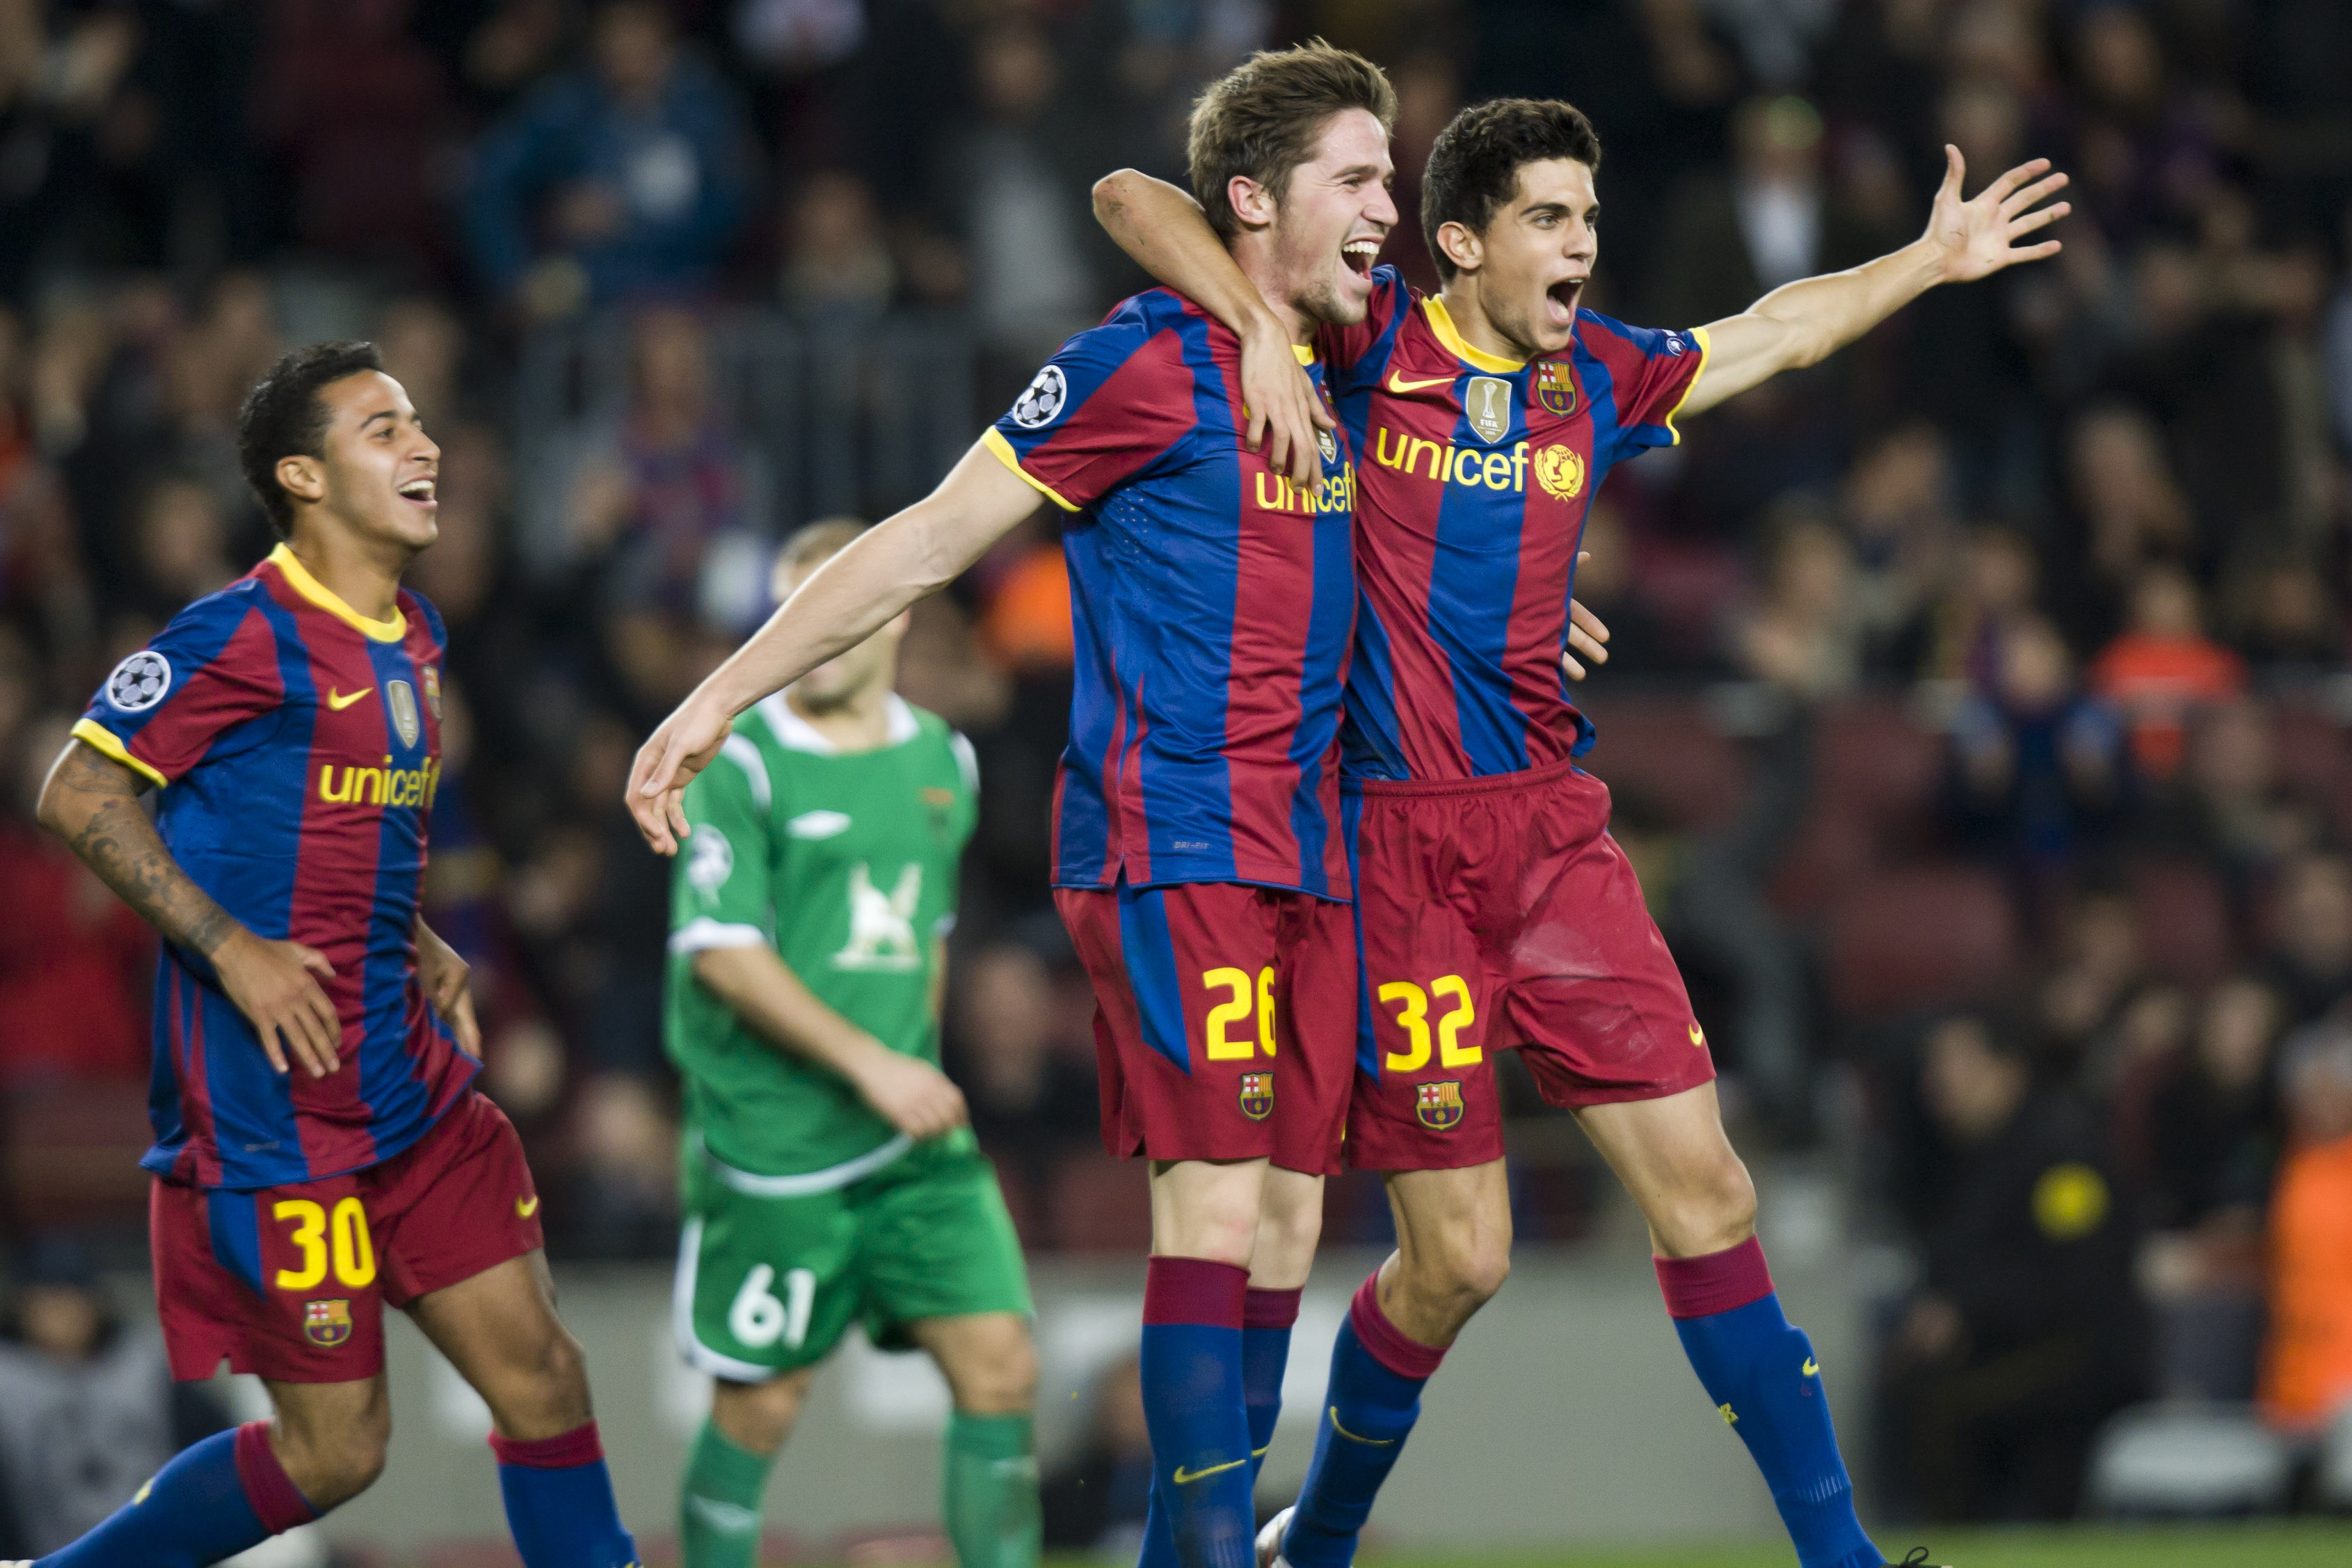 Barcelona Fc: Marc Bartra's Ten Key Facts And Figures From His Time At